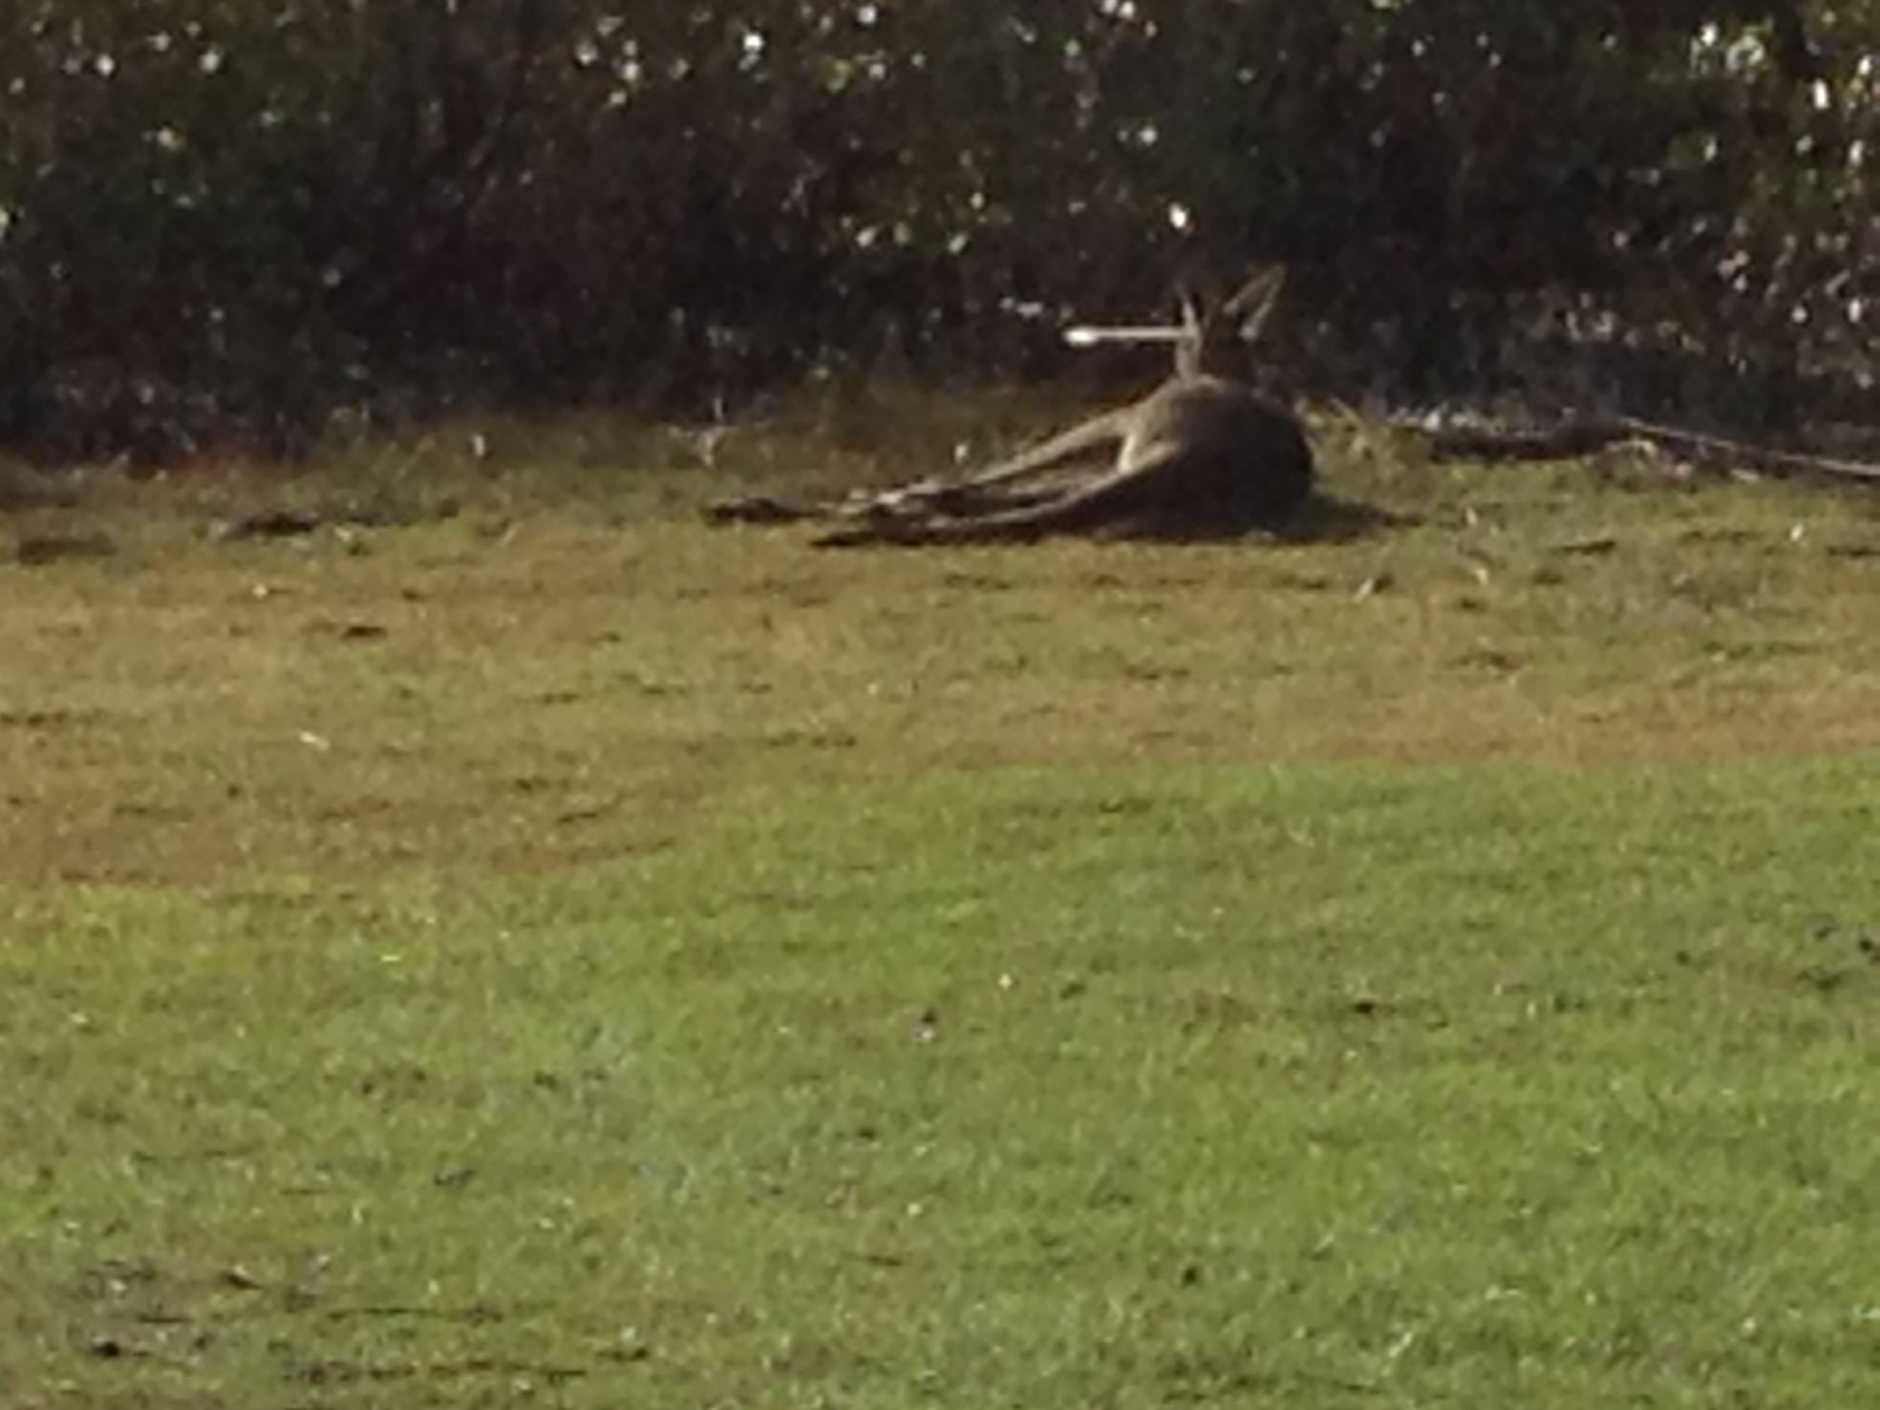 A kangaroo has been shot in the head with an arrow at Toorbul. It's been bouncing around for three days.